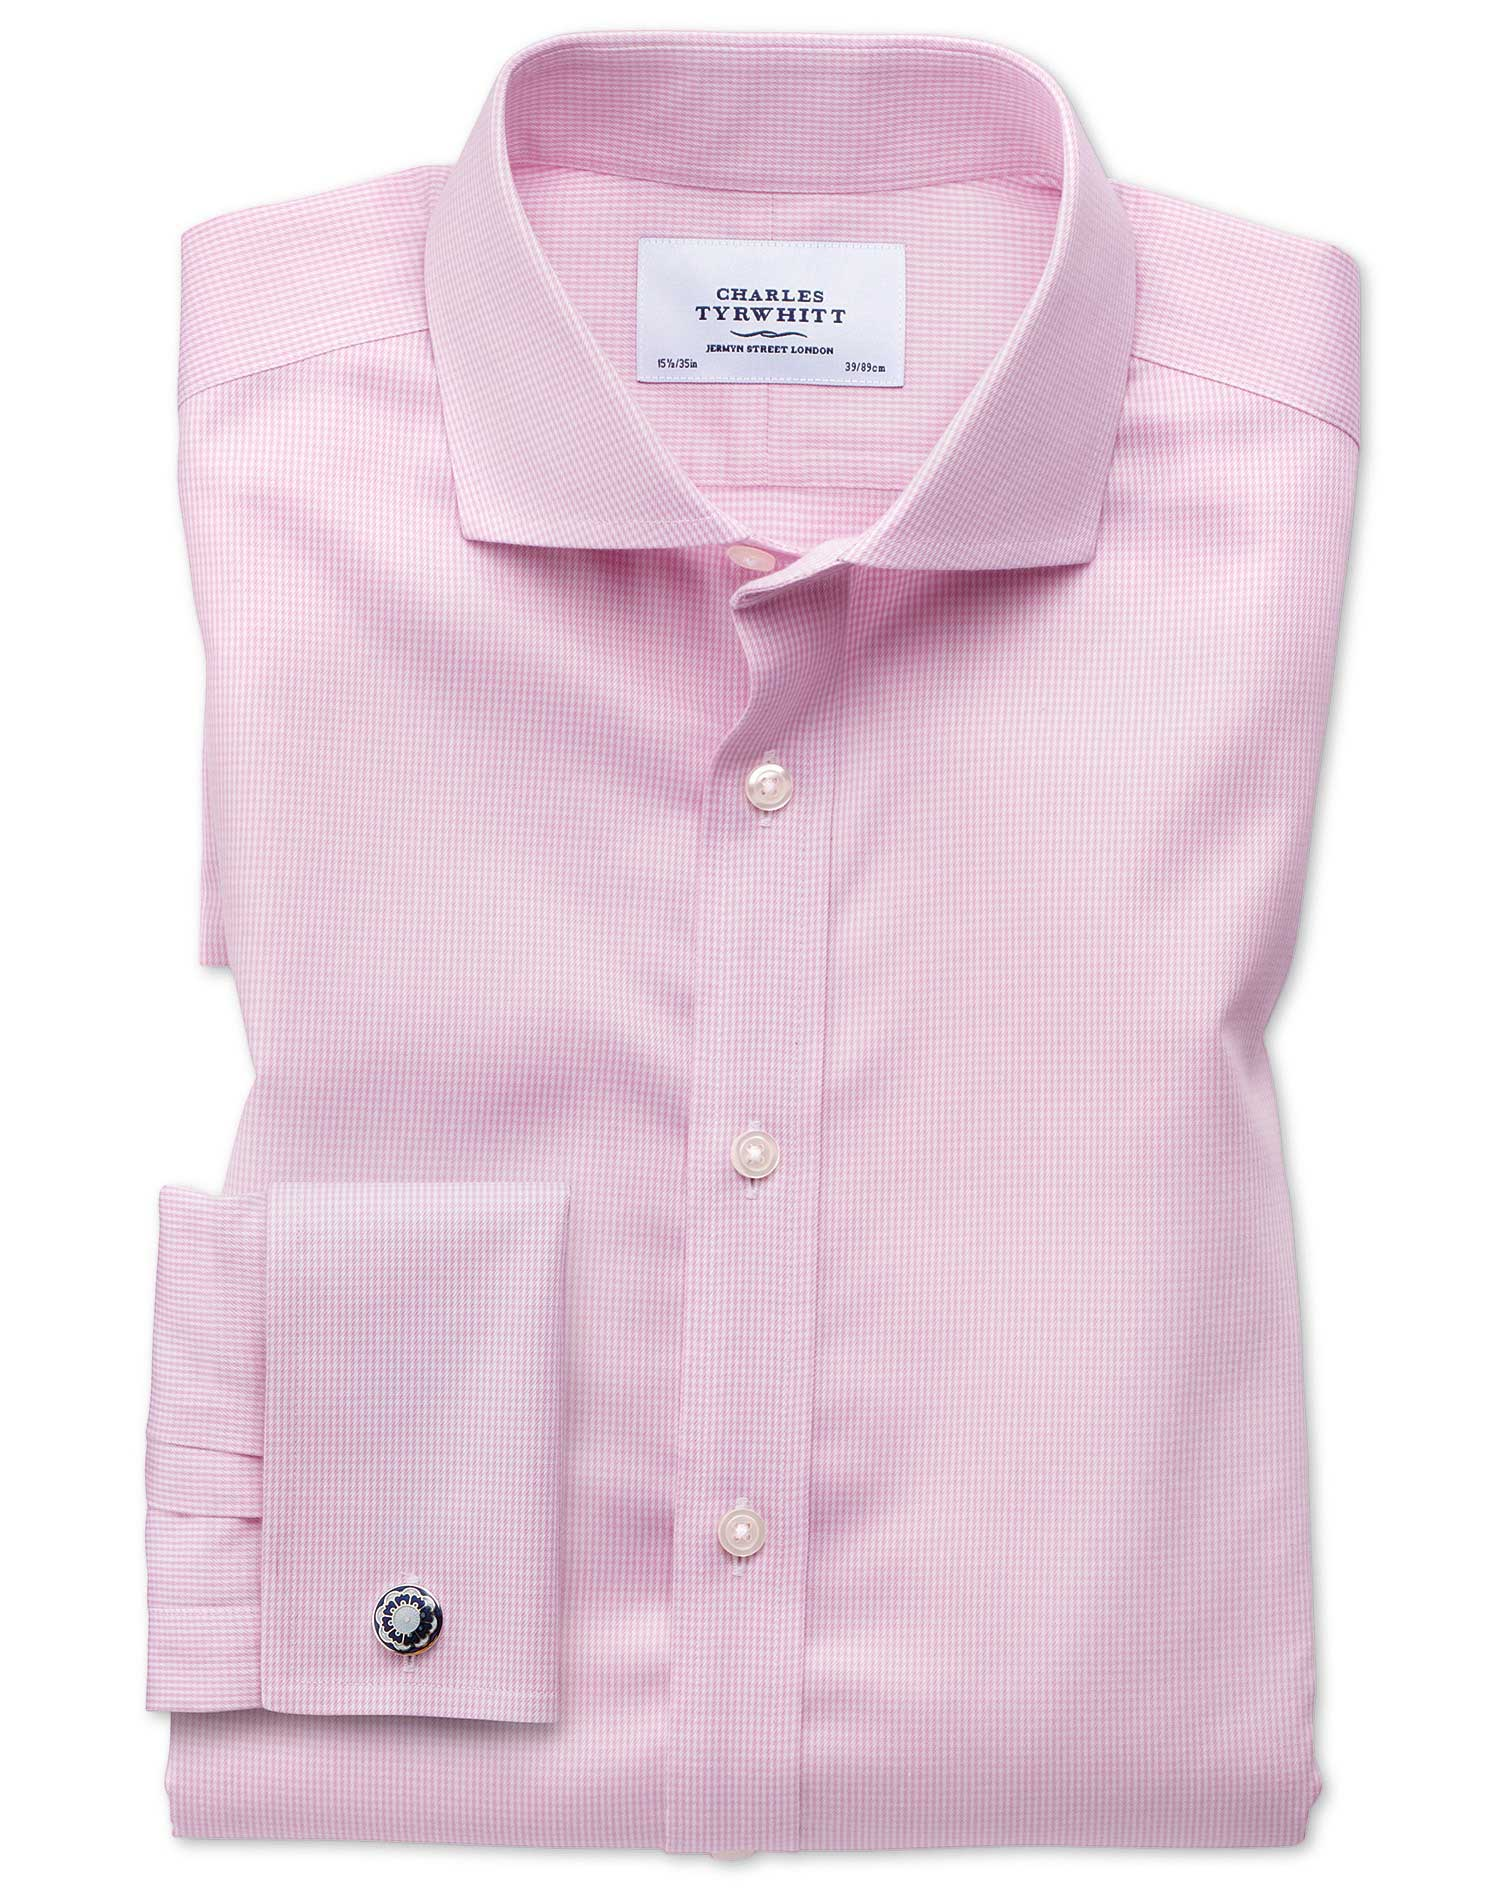 Slim Fit Cutaway Non-Iron Puppytooth Light Pink Cotton Formal Shirt Single Cuff Size 15/33 by Charle